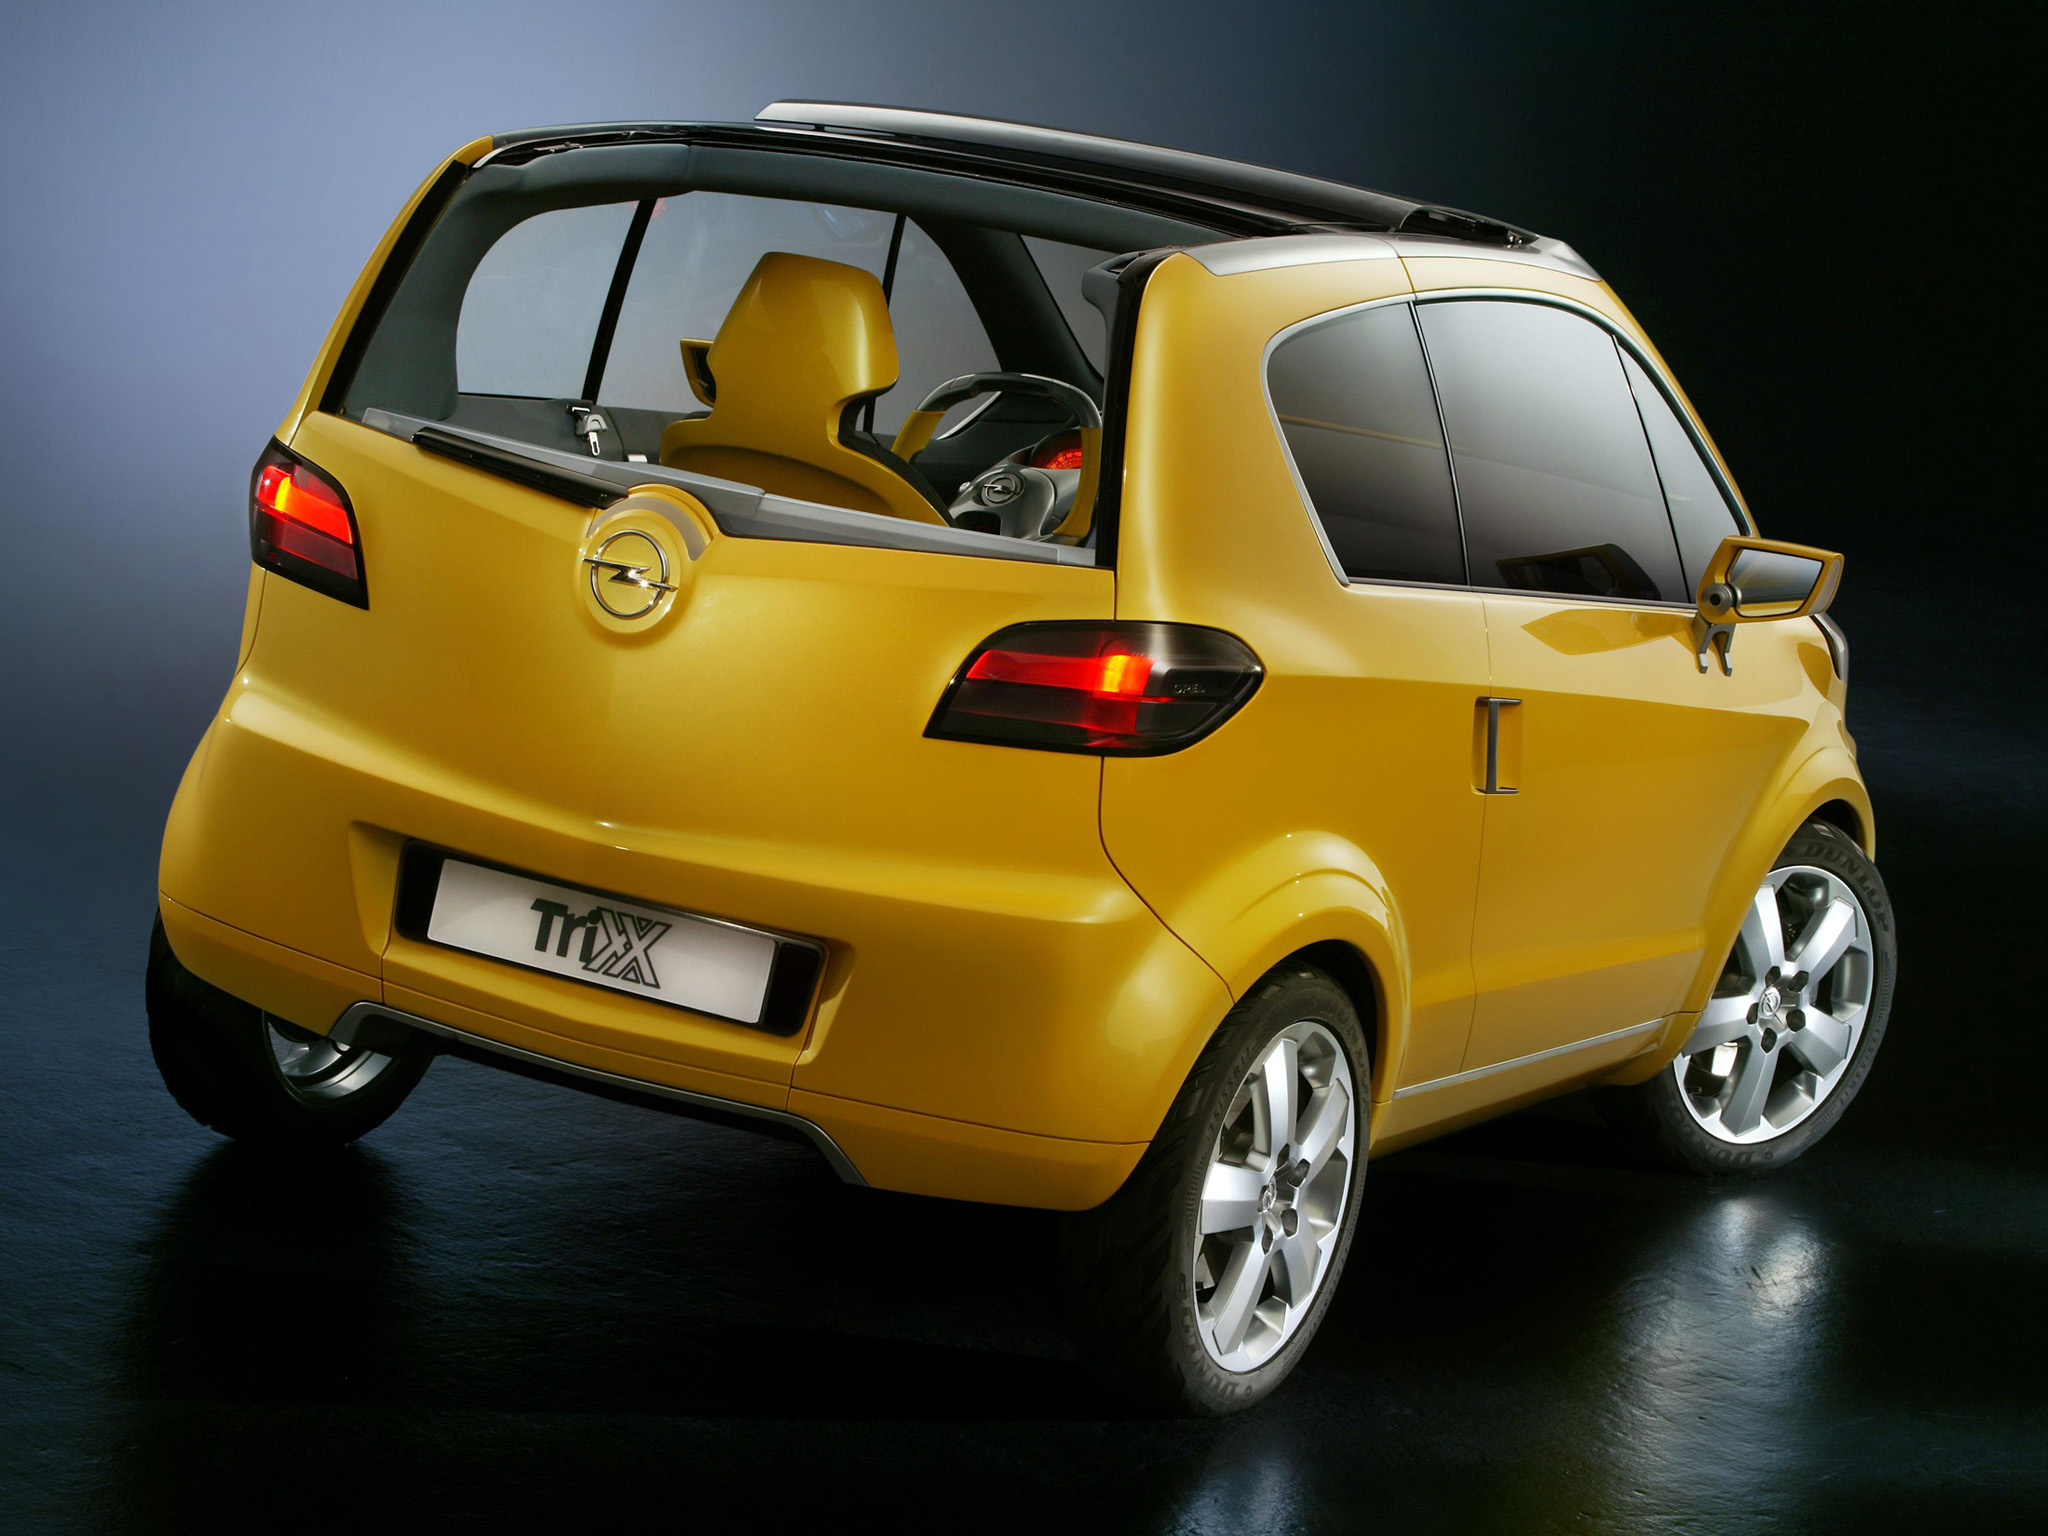 Opel trixx photo - 3